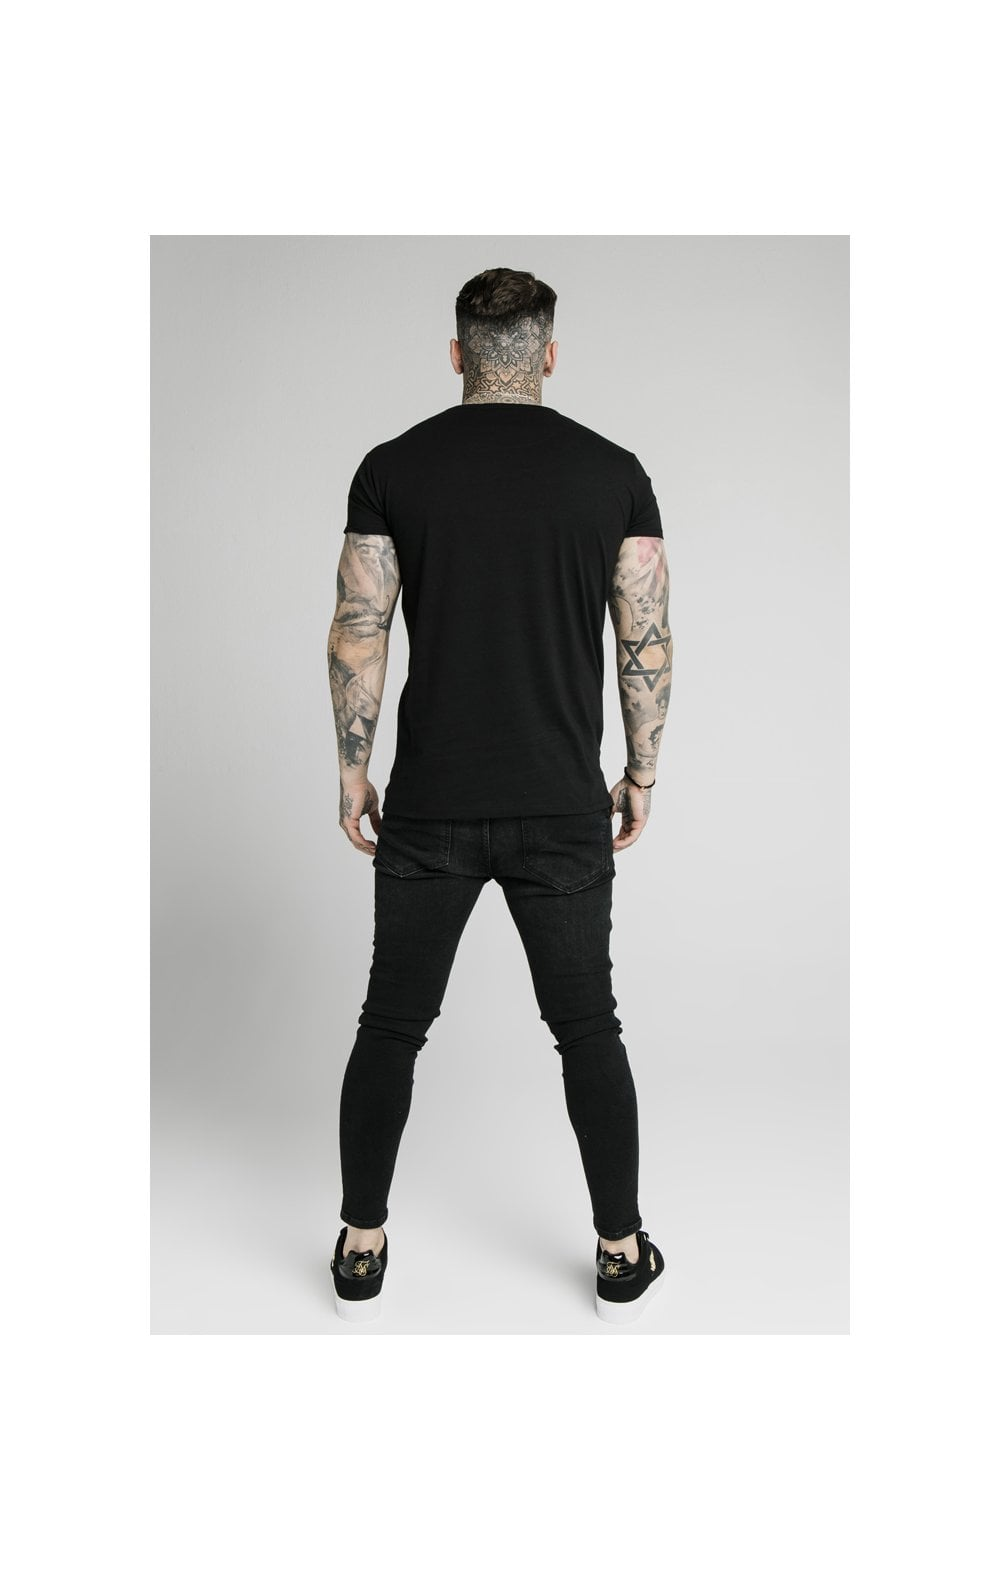 Load image into Gallery viewer, SikSilk S/S Fade Rhinestone Box Tee - Black (2)